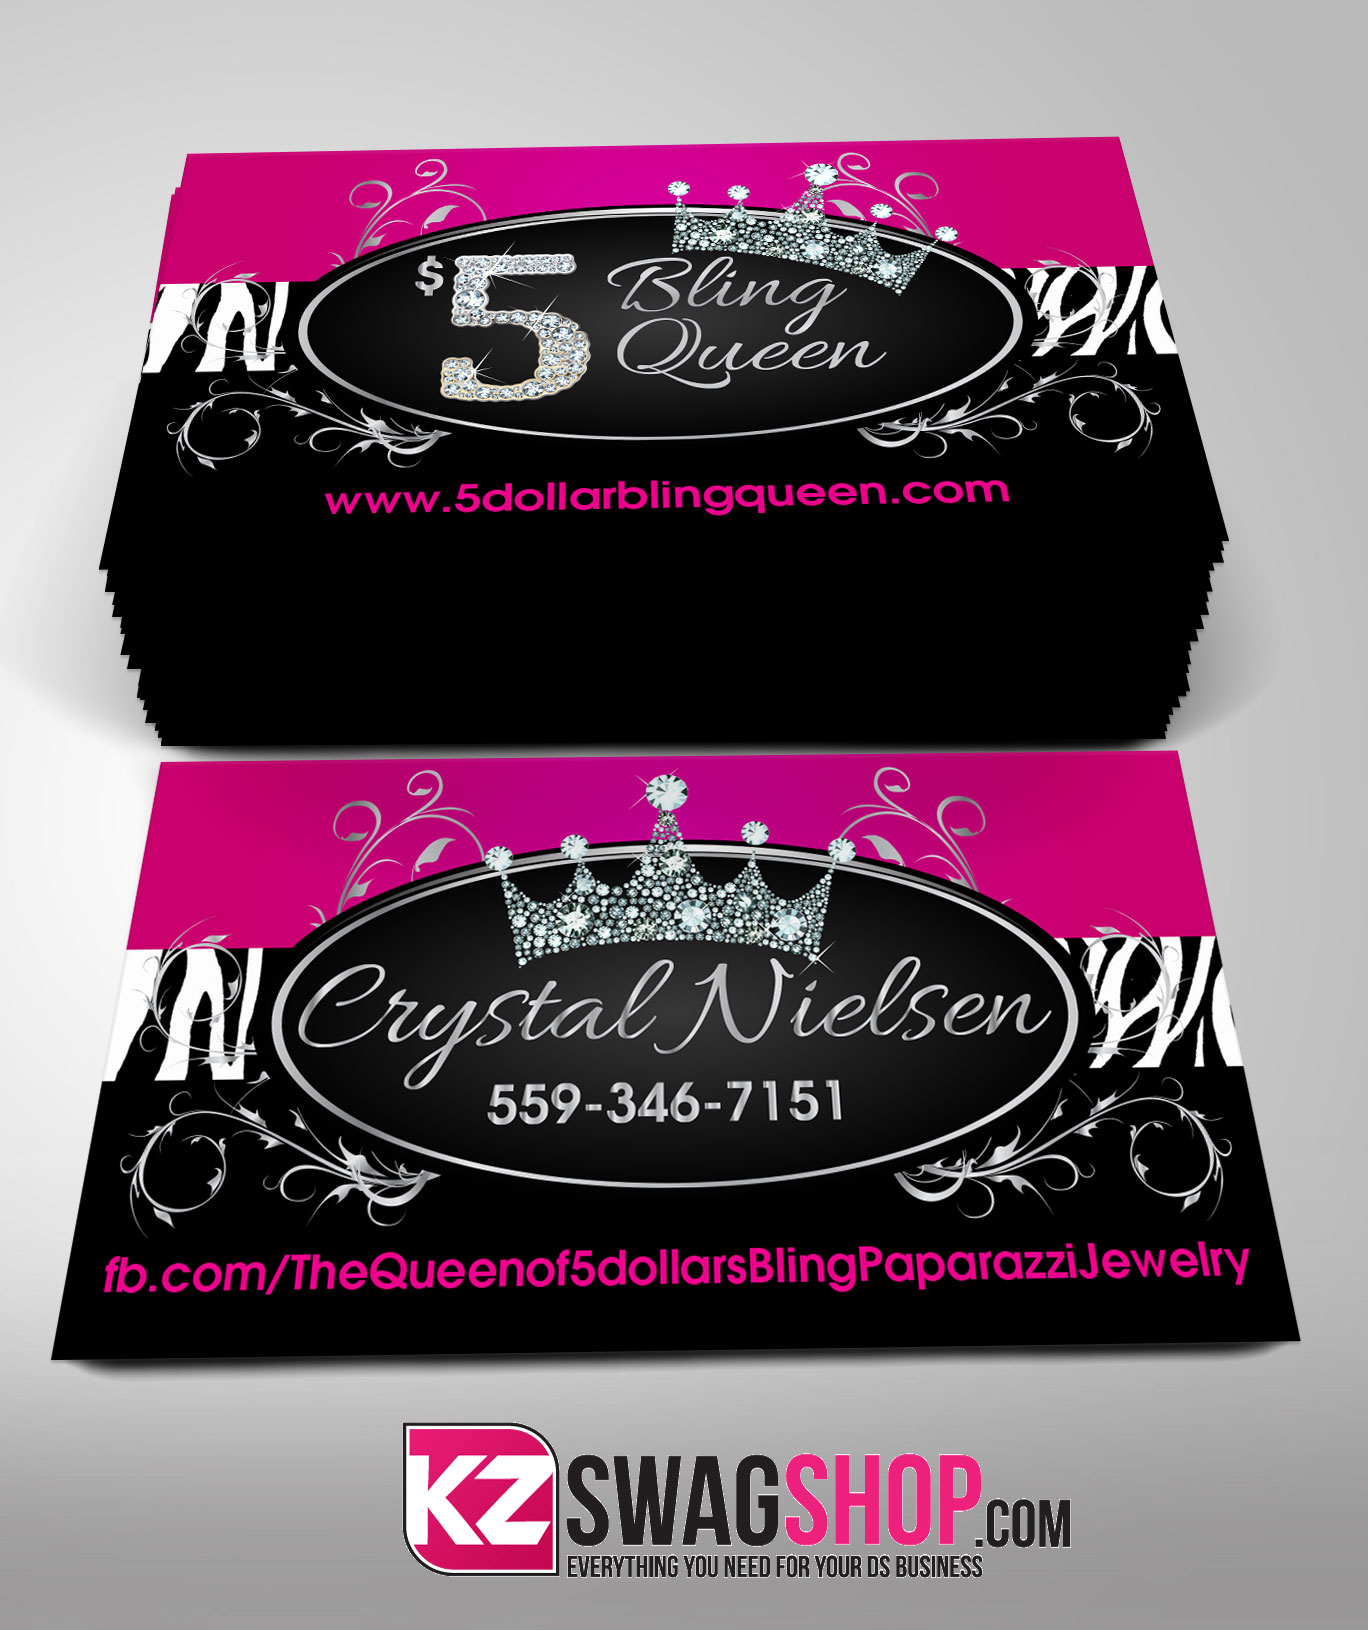 Paparazzi Business Cards style 6 · KZ Creative Services · line